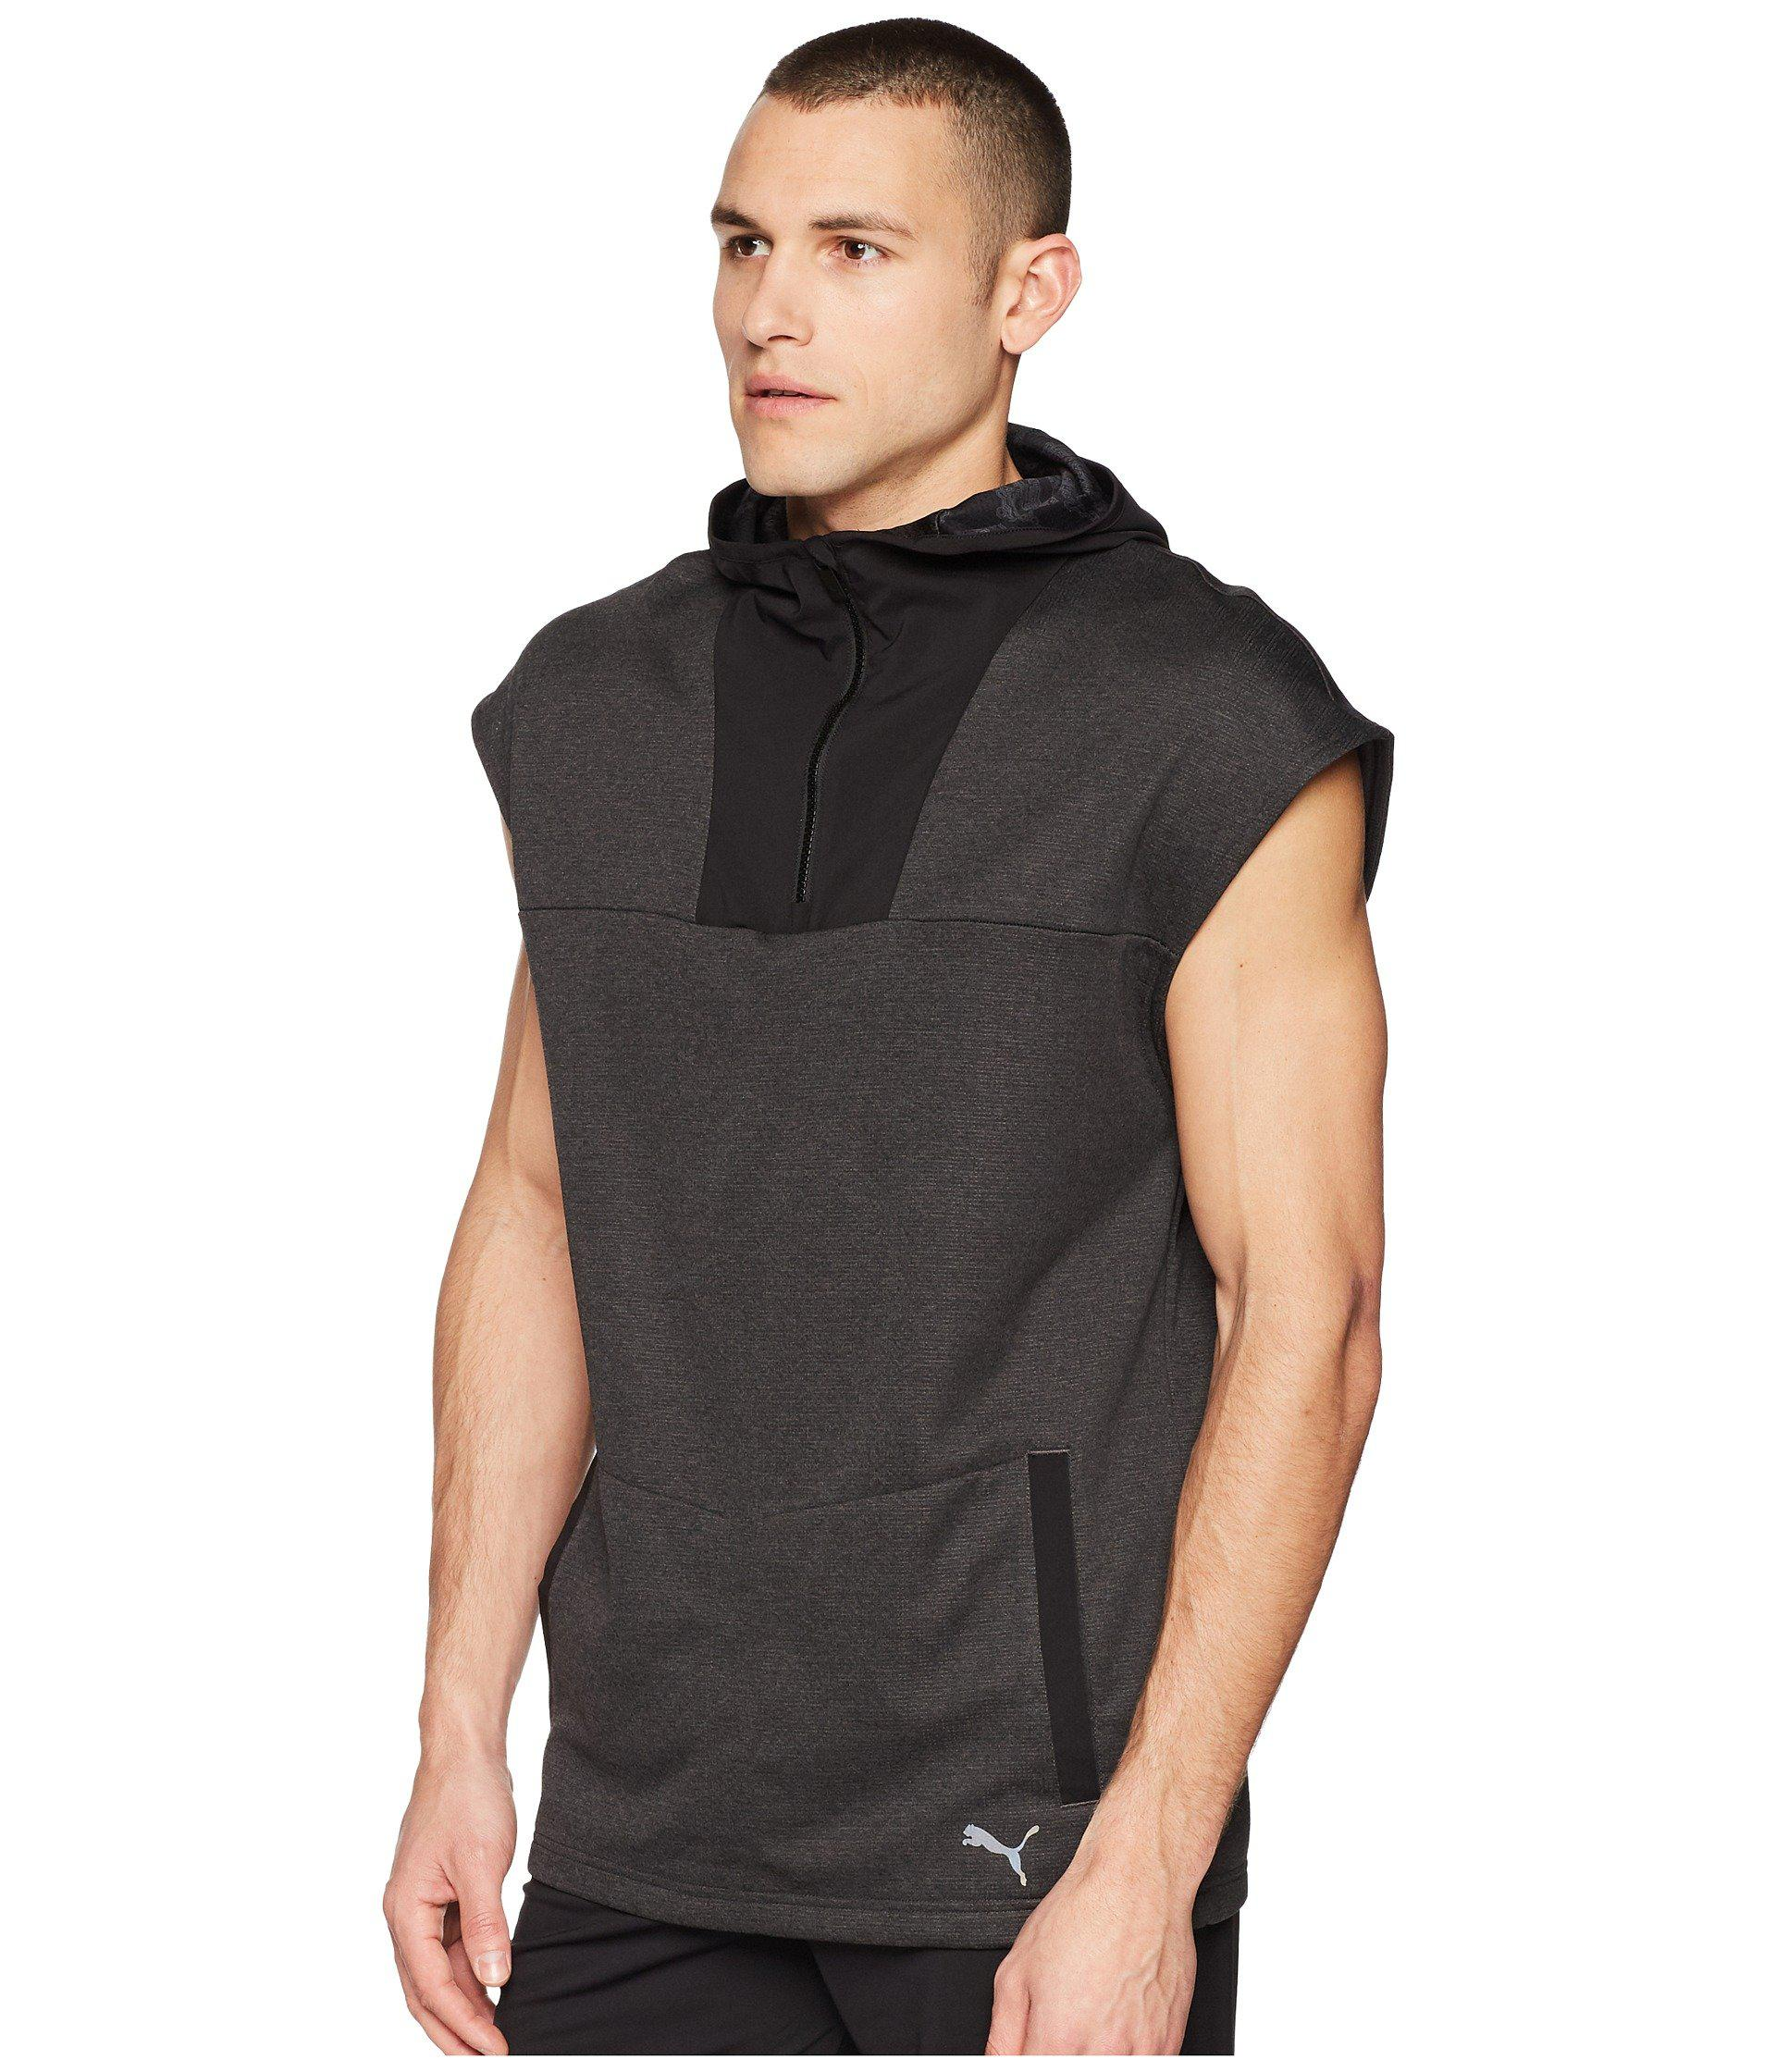 d802c17e47b6 Lyst - PUMA Oceanaire Sleeveless Hoodie in Gray for Men